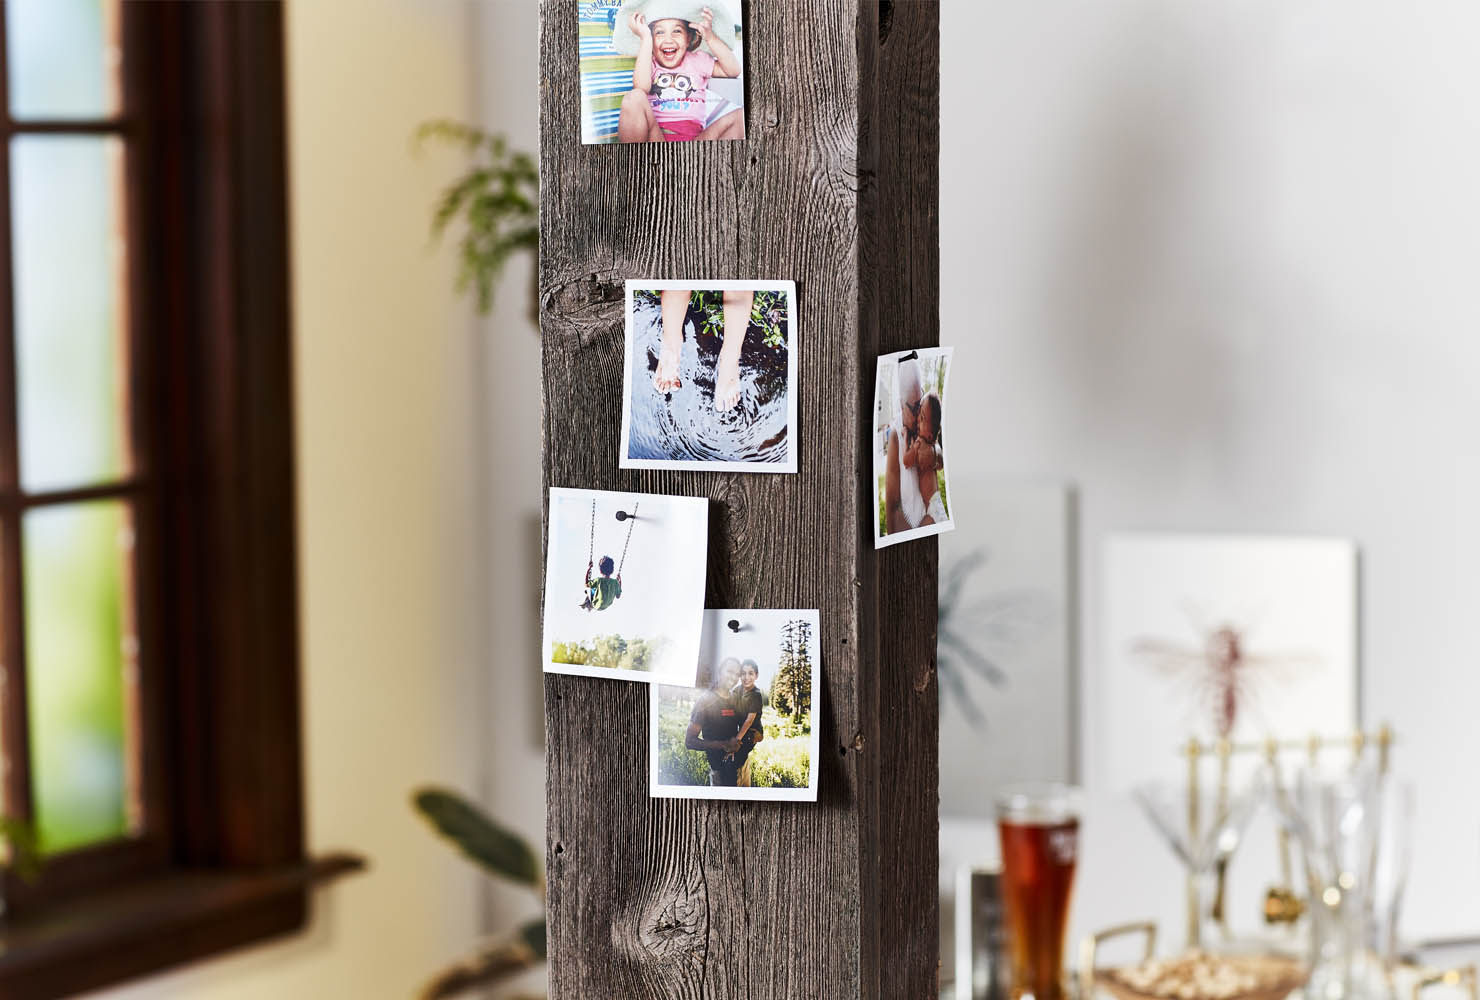 Square photo prints pinned on wooden post.